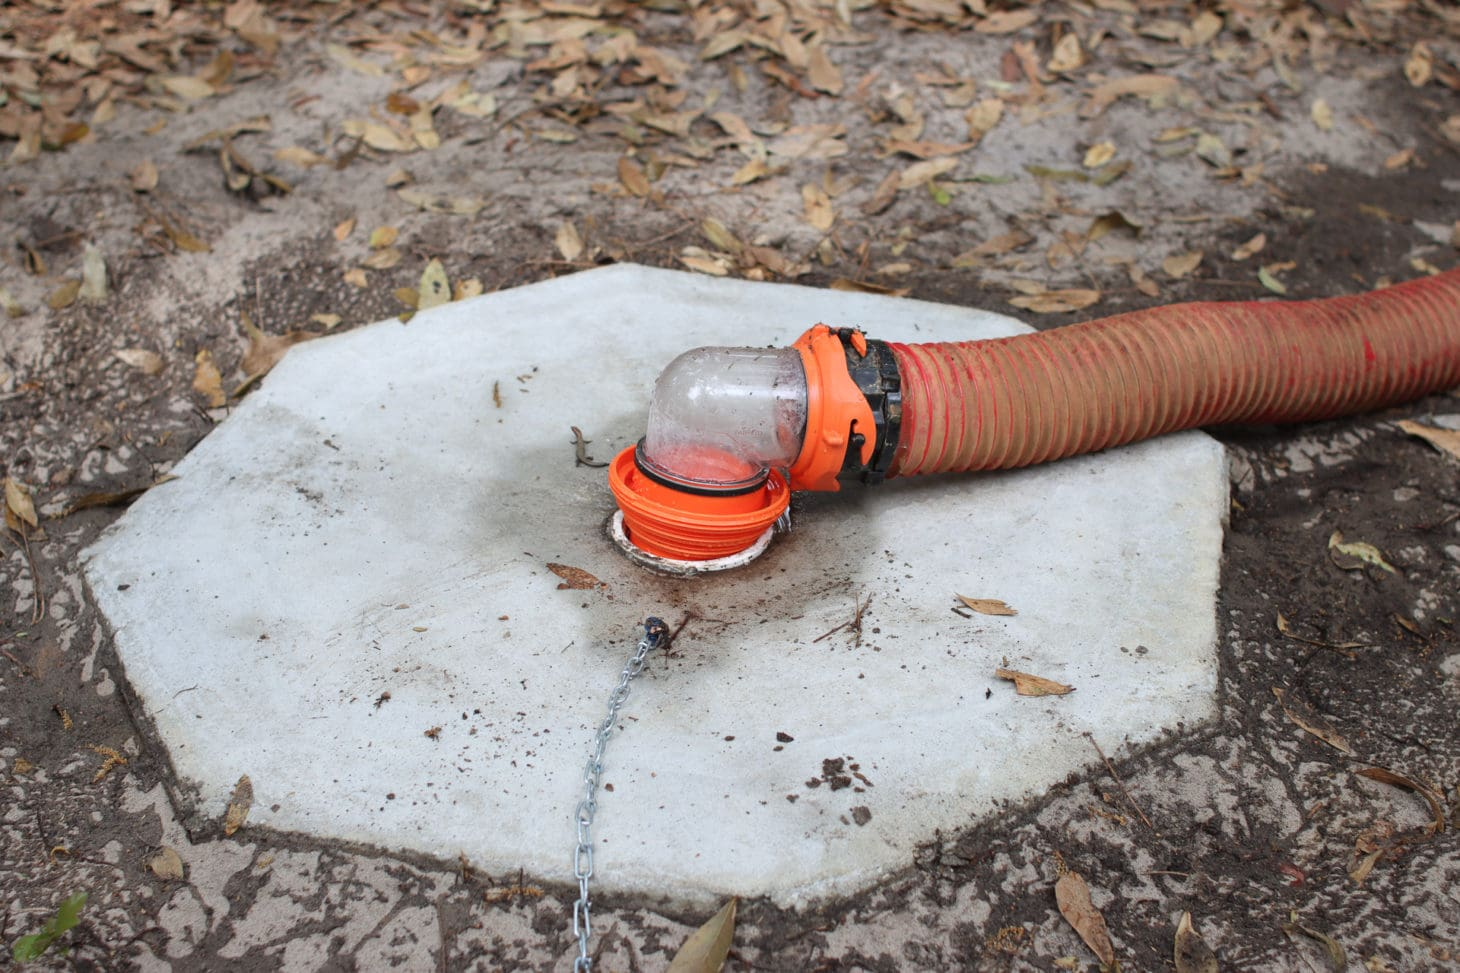 Sewer hose connected to a sewer output at a campsite